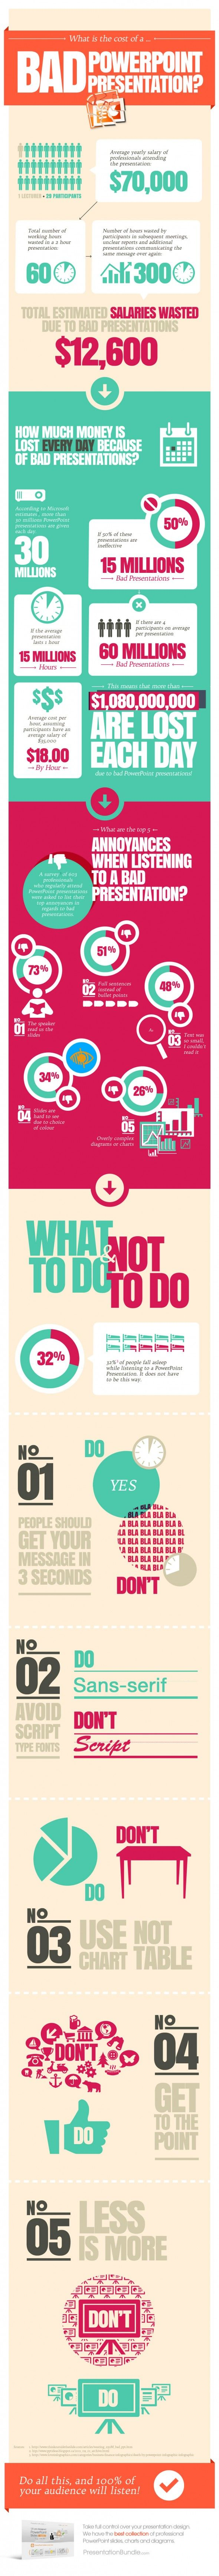 #INFOGRAPHIC: WHAT IS THE COST OF A BAD POWERPOINT PRESENTATION?